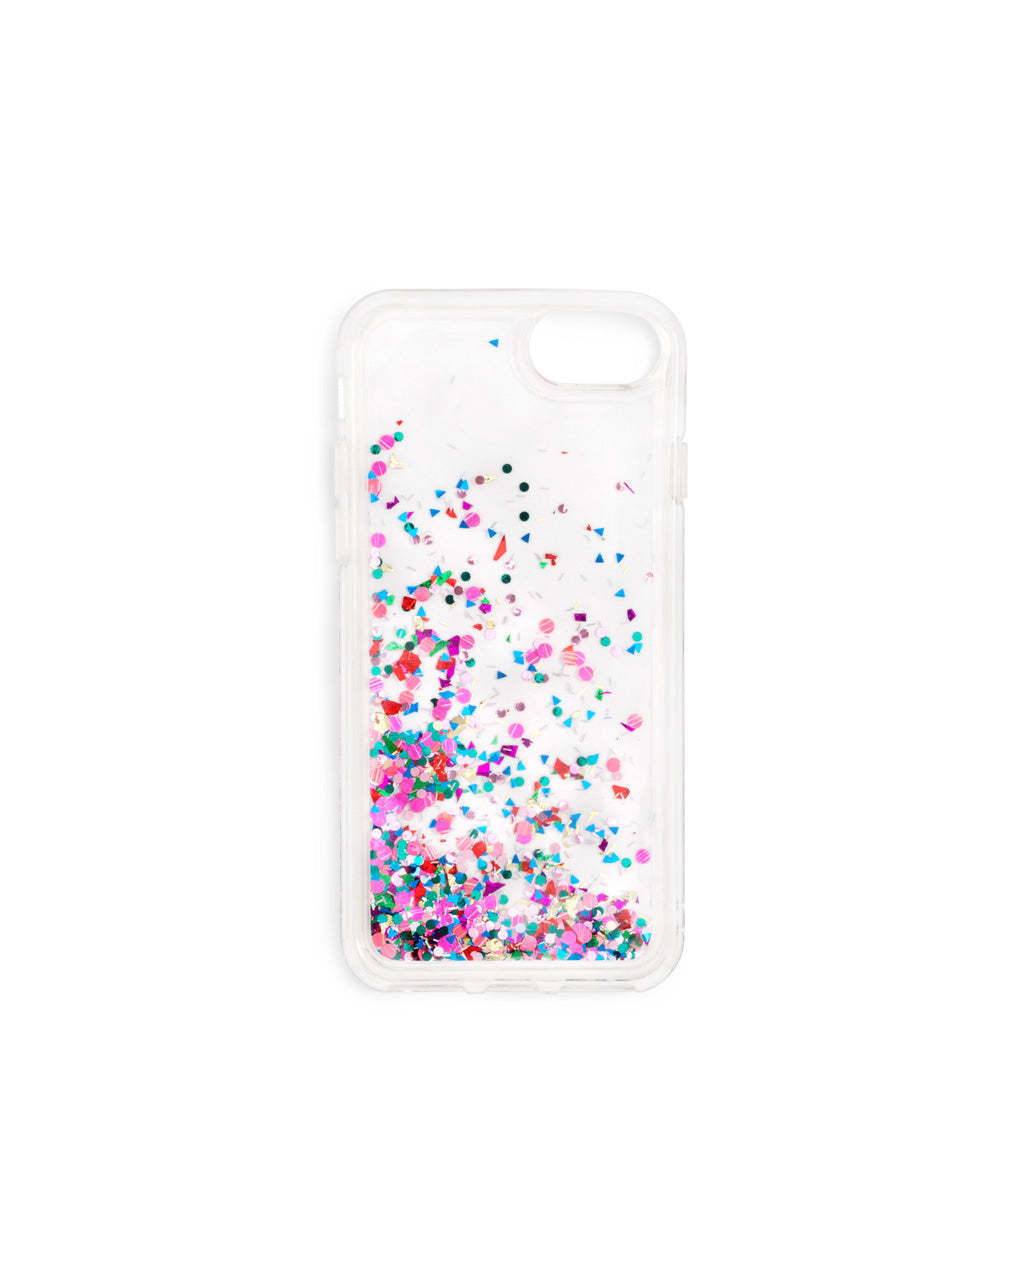 048fea4218 Glitter Bomb iPhone Case - Confetti by ban.do - iphone case - ban.do